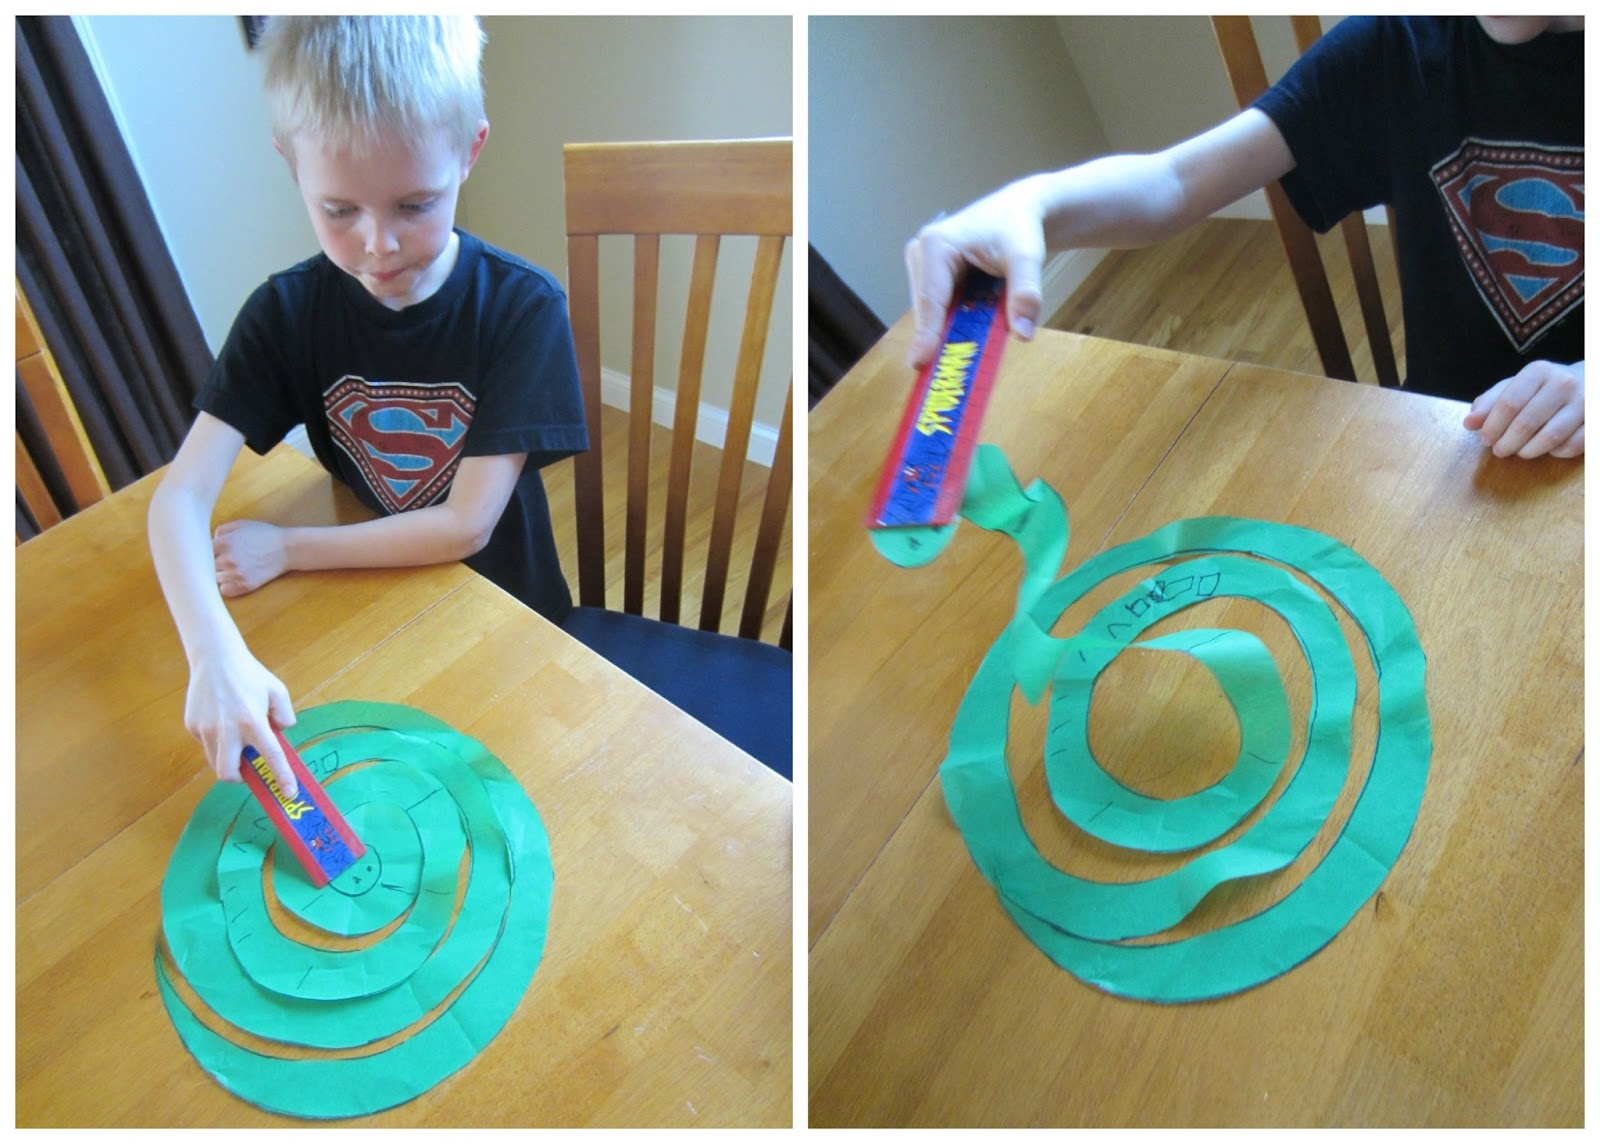 Relentlessly Fun Deceptively Educational One Very Charming Snake A Static Electricity Experiment